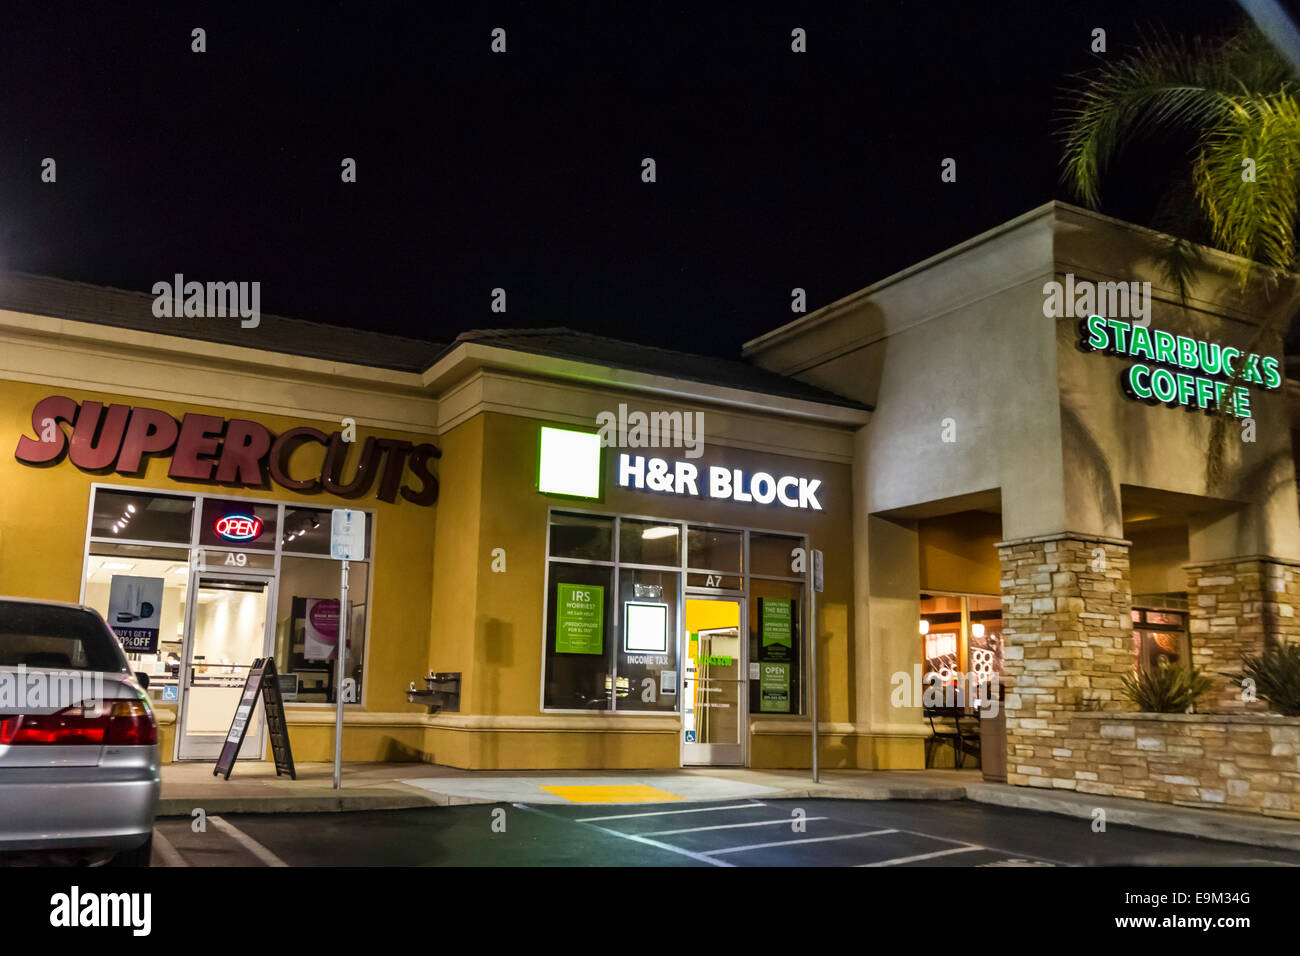 A strip mall in Modesto California with a Supercuts, H&R Block tax preparers, and a Starbucks coffee at night - Stock Image